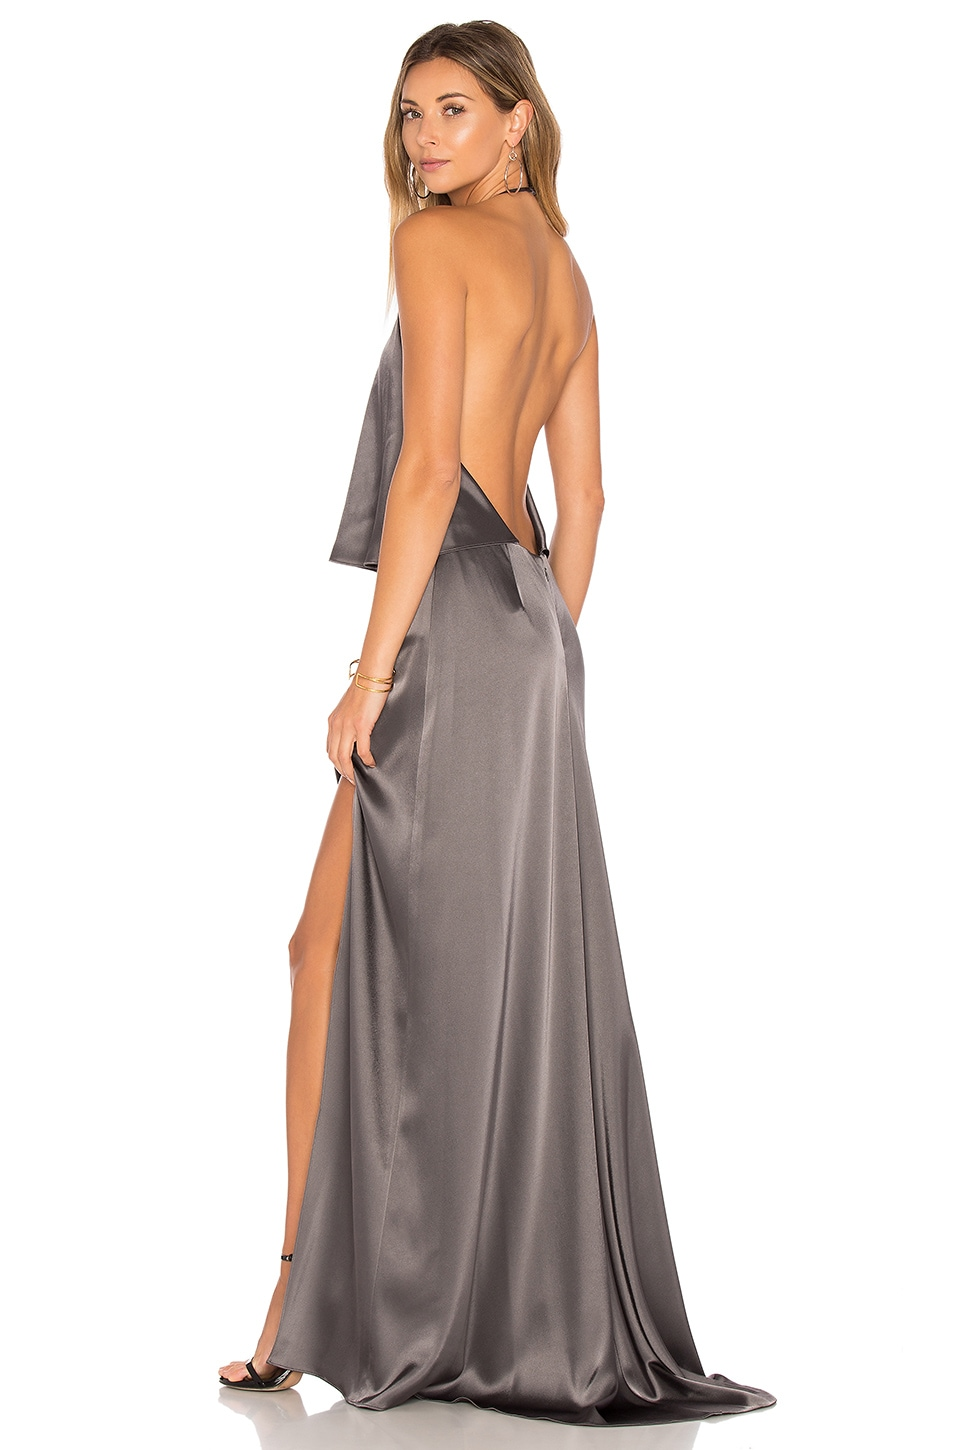 Halston Heritage Halter Low Back Dress in Graphite | REVOLVE